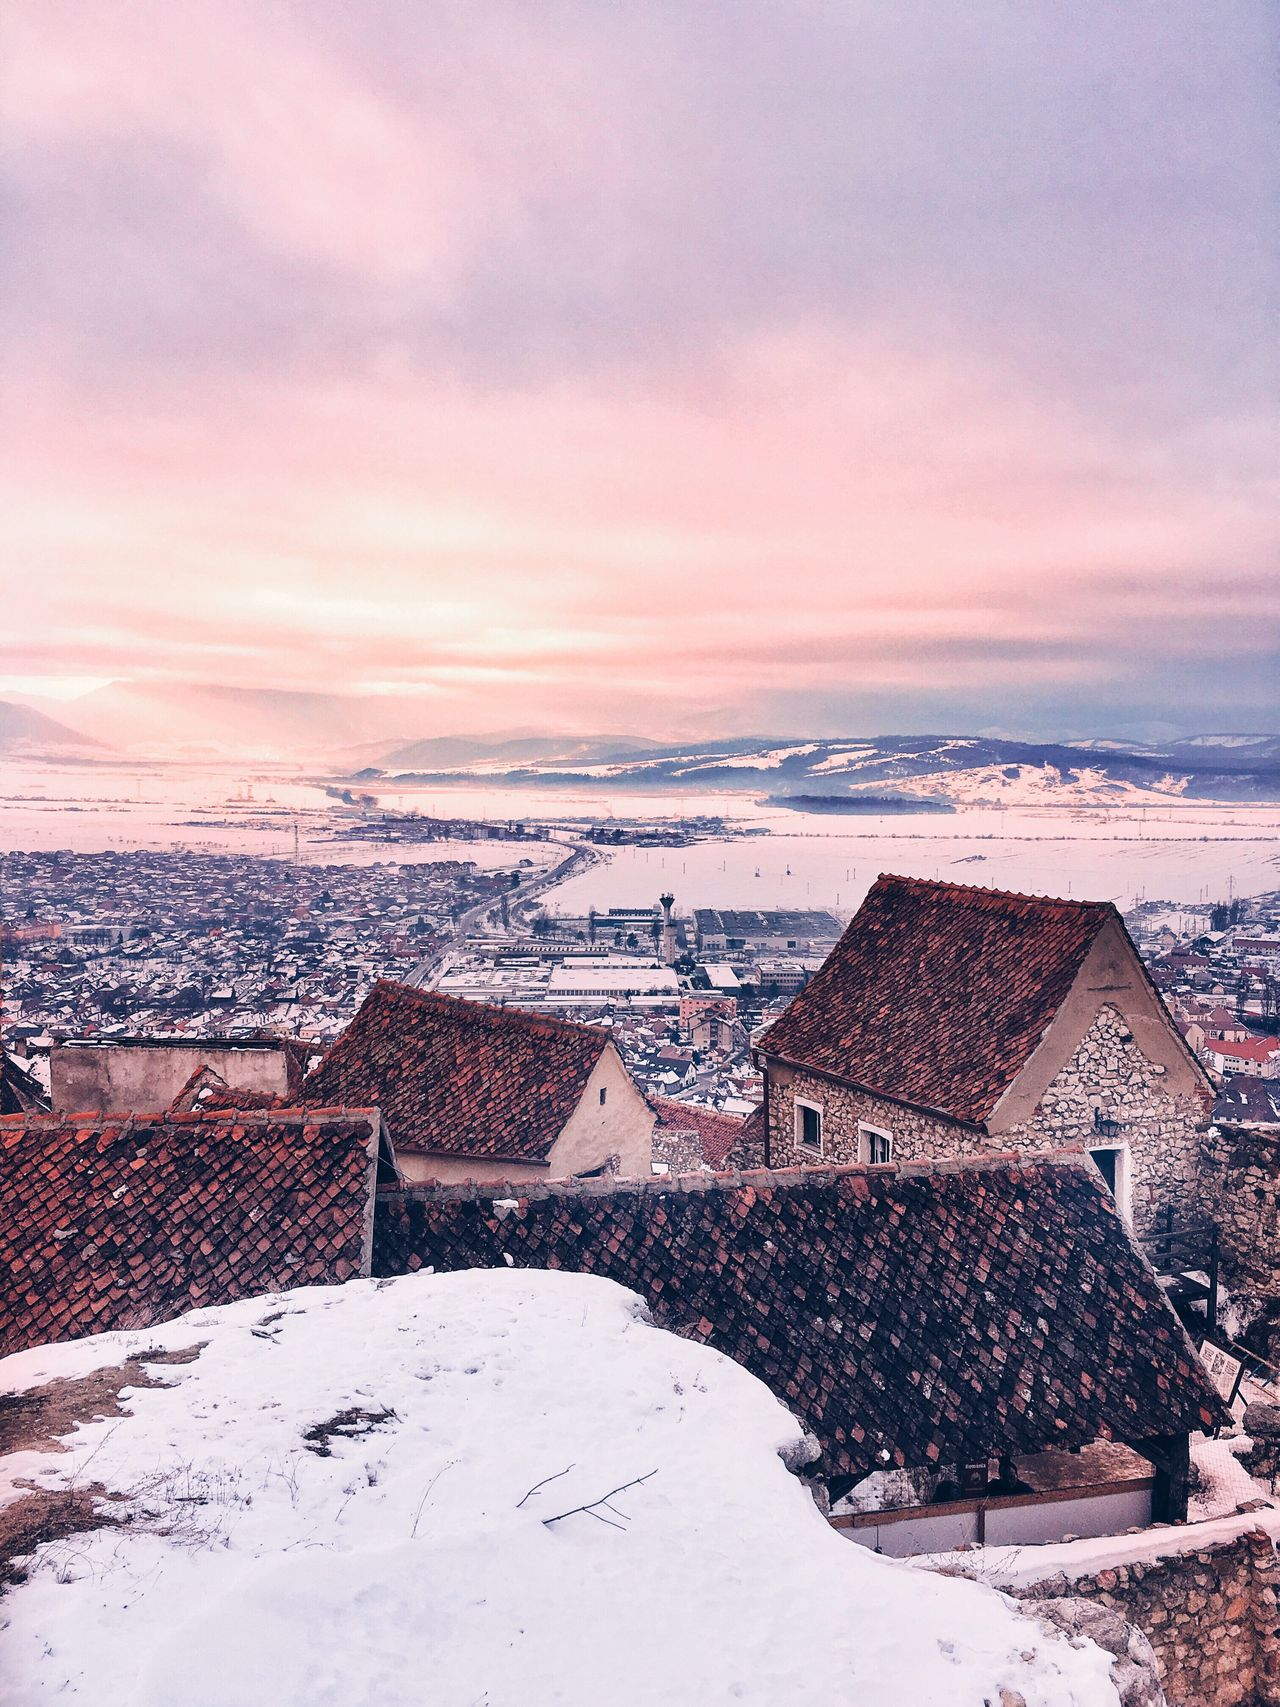 Winter sunset over the mountains in Rasnov Romania Snow Roof Winter House Citadel Medieval High Angle View Cold Temperature No People Sunset Nature Tiled Roof  Beauty In Nature Cityscape Outdoors